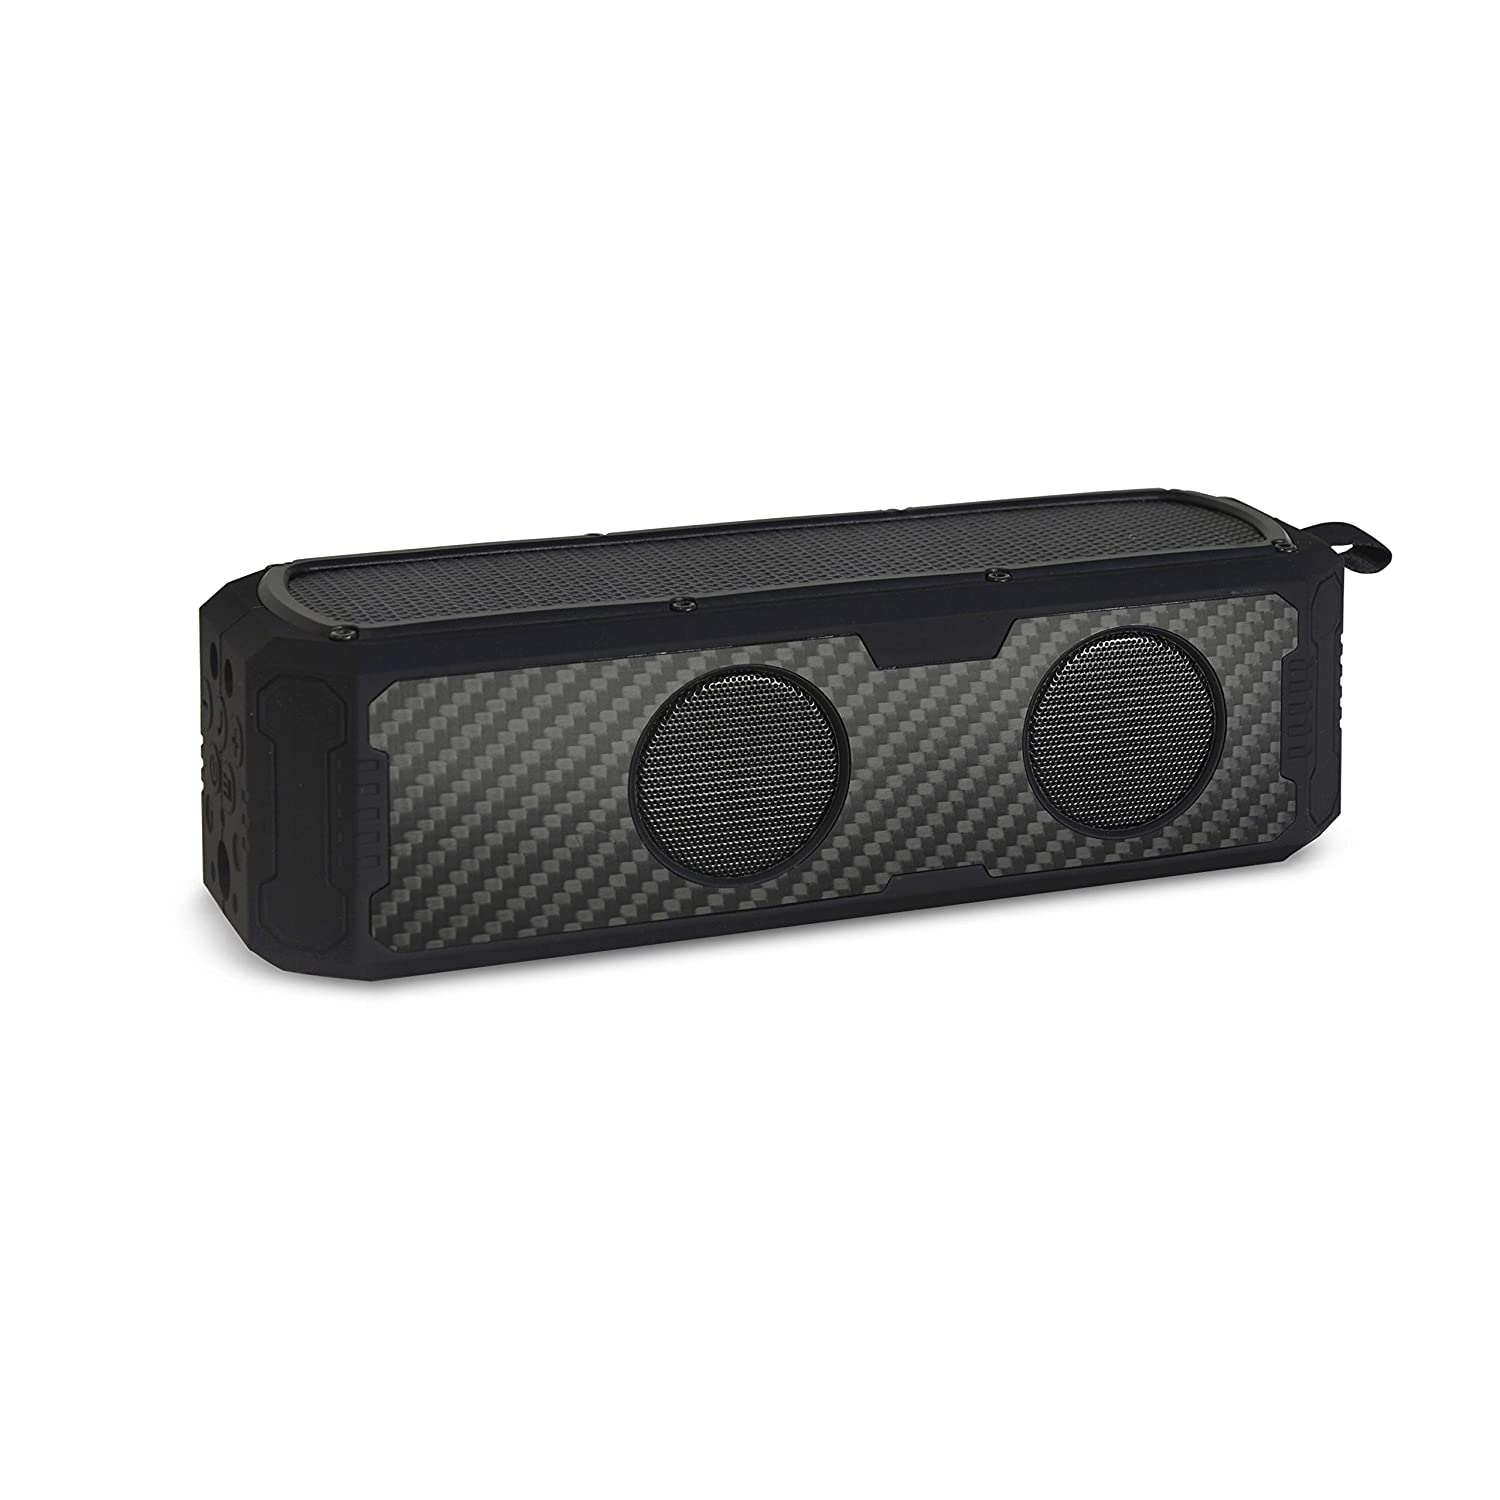 REVEAL's Solar Powered Bluetooth Speaker